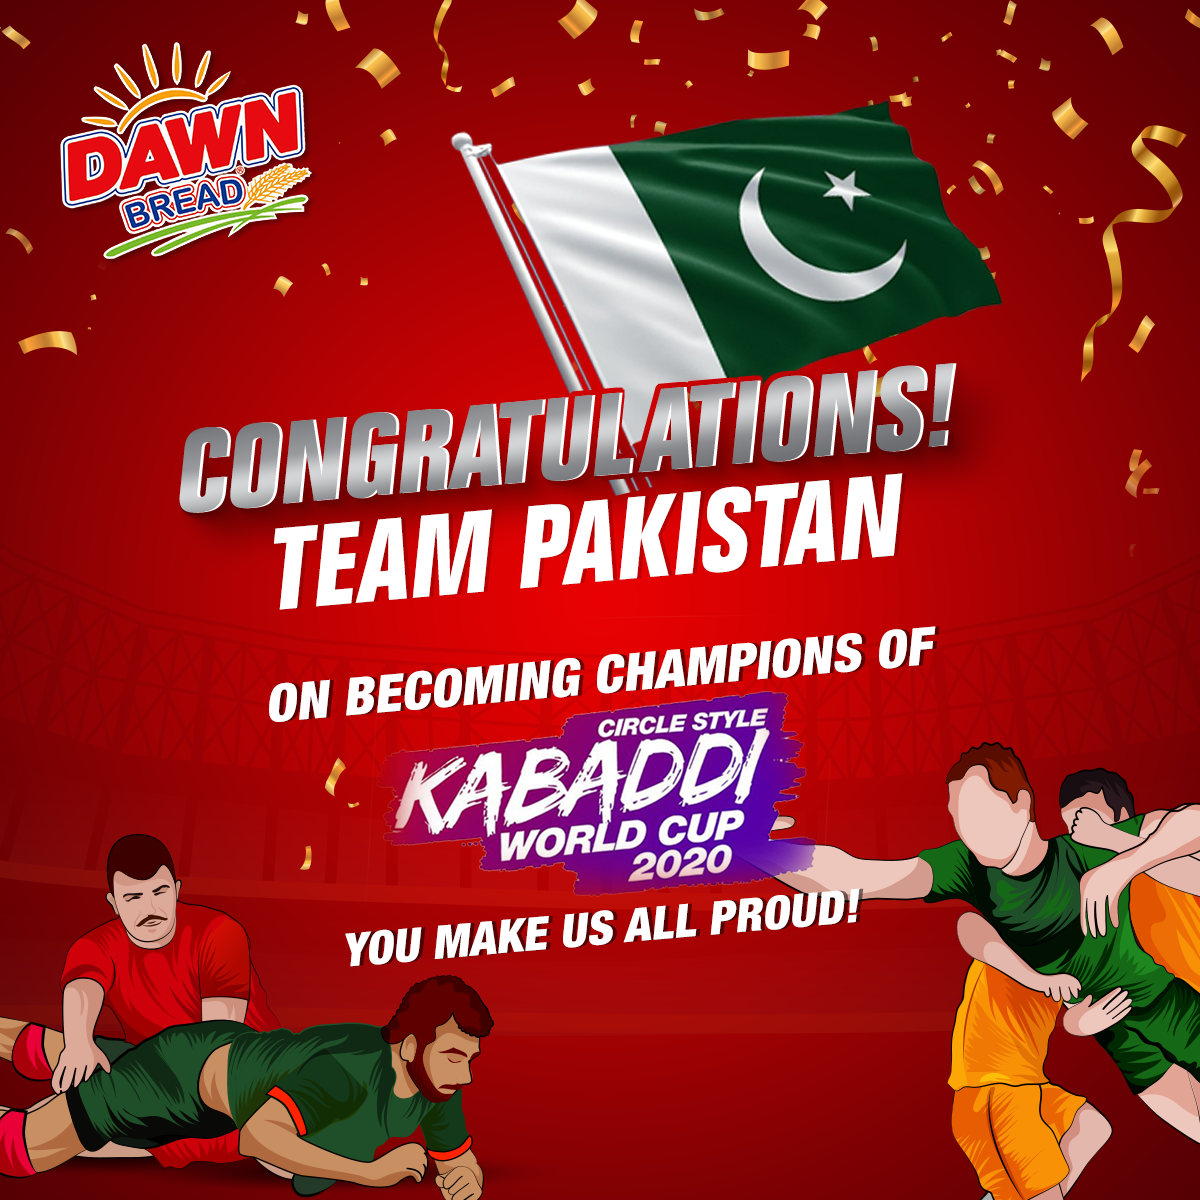 Proud Moment For Pakistan We Congratulates Pakistan Kabaddi Team On Their Well Deserved Success On Winning Kabaddi World Cup In 2020 Kabaddi World Cup World Cup World